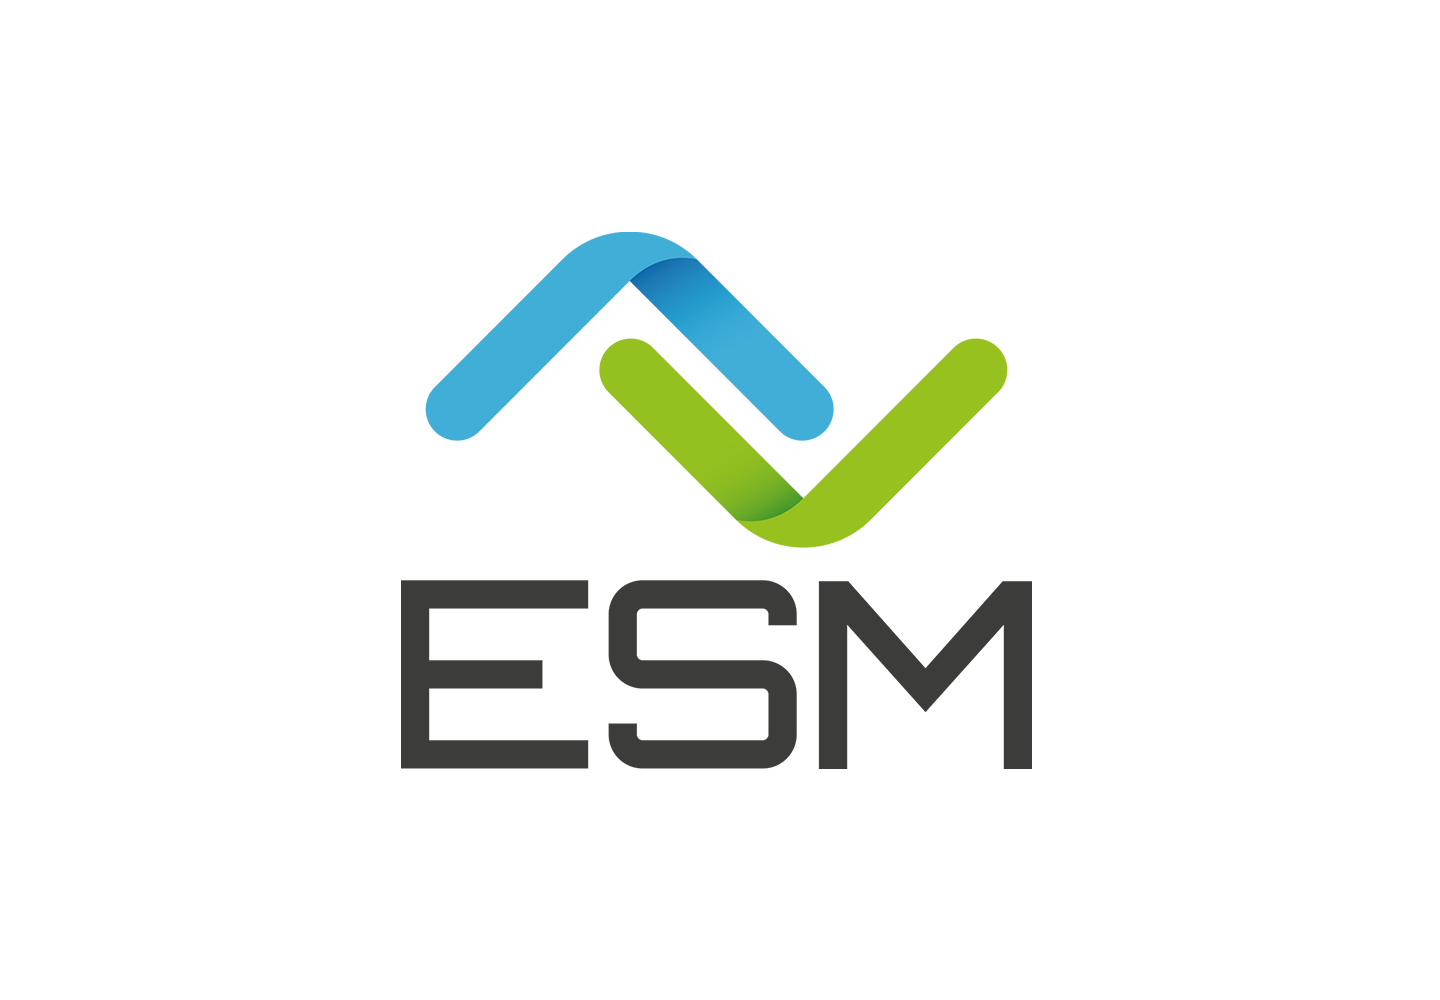 http://rusyndesign.co.uk/wp-content/uploads/2021/02/Branding-ESM.png